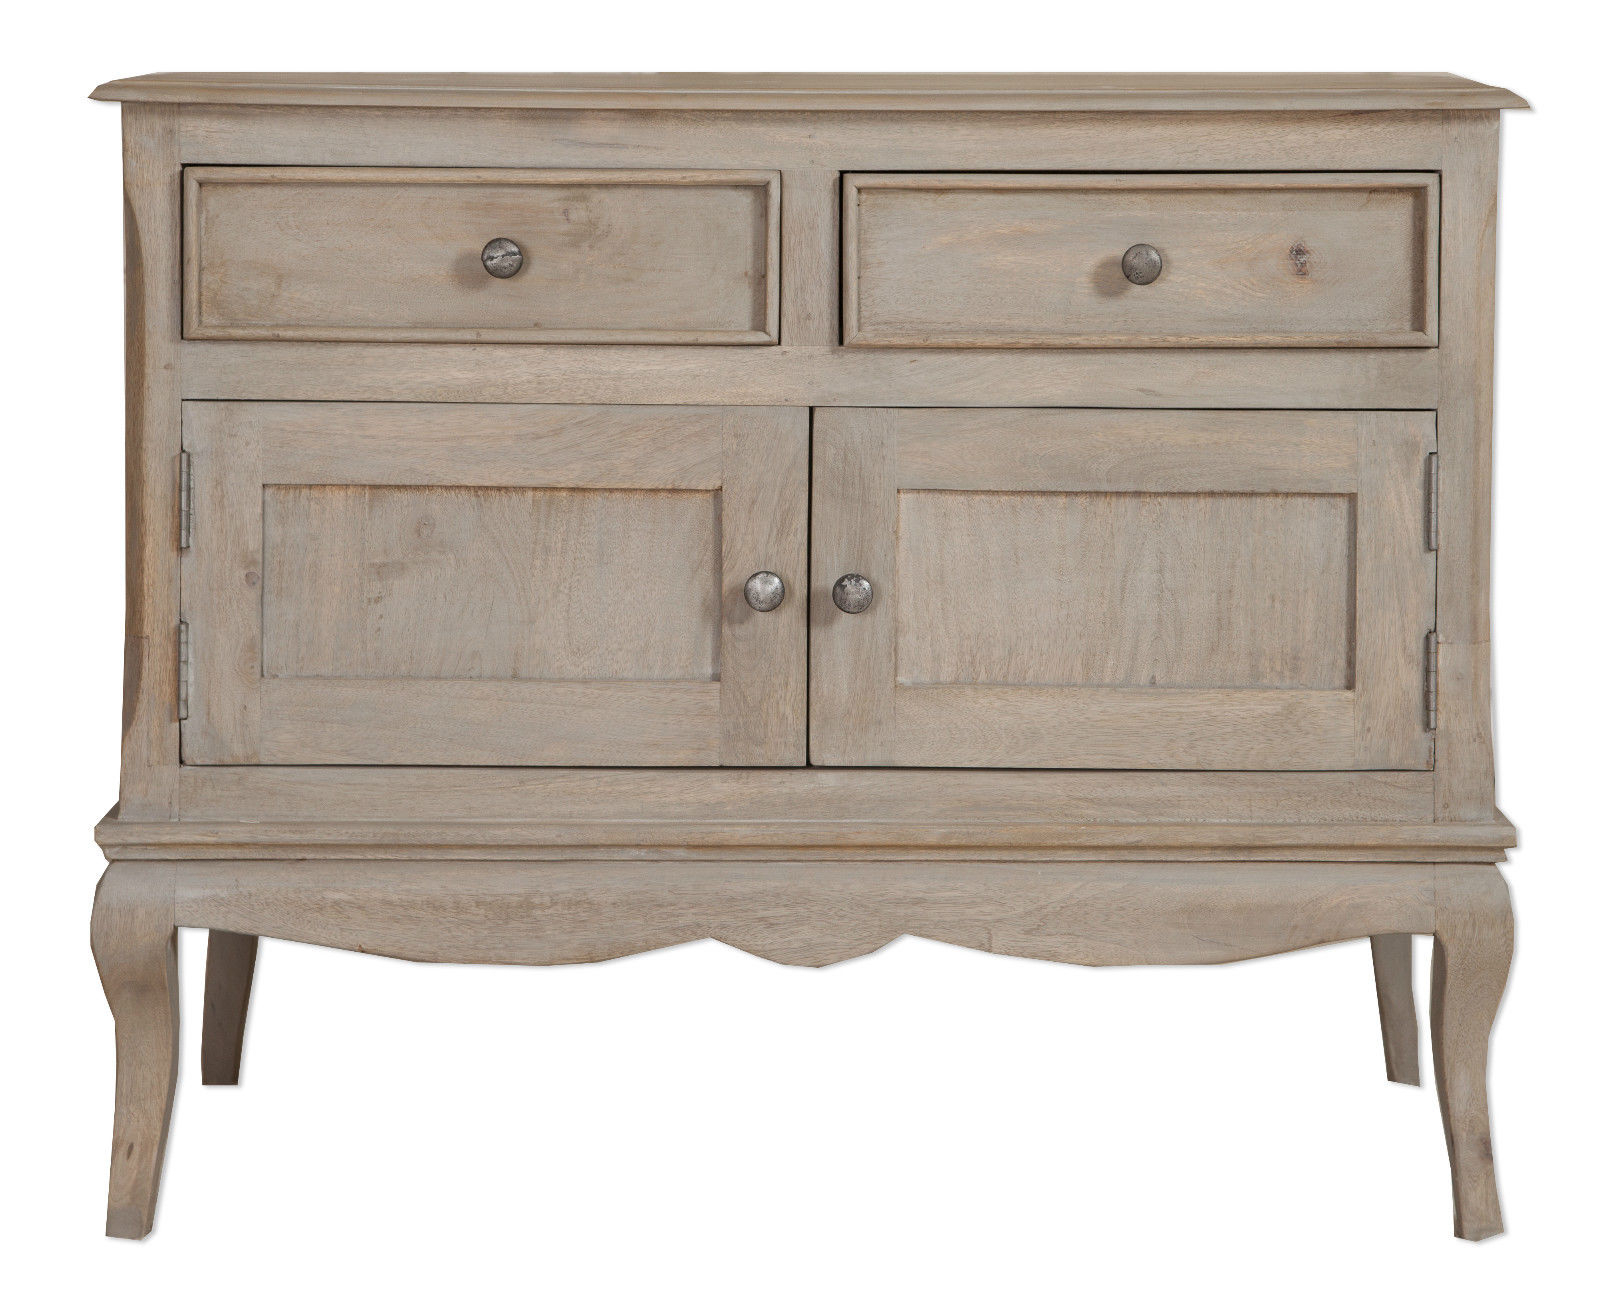 Mango Wood Grey 4 Drawer 4 Door Sideboards Inside Well Known Loire French Grey Solid Mango Wood 2 Door / 2 Drawer Sideboard (Gallery 9 of 20)